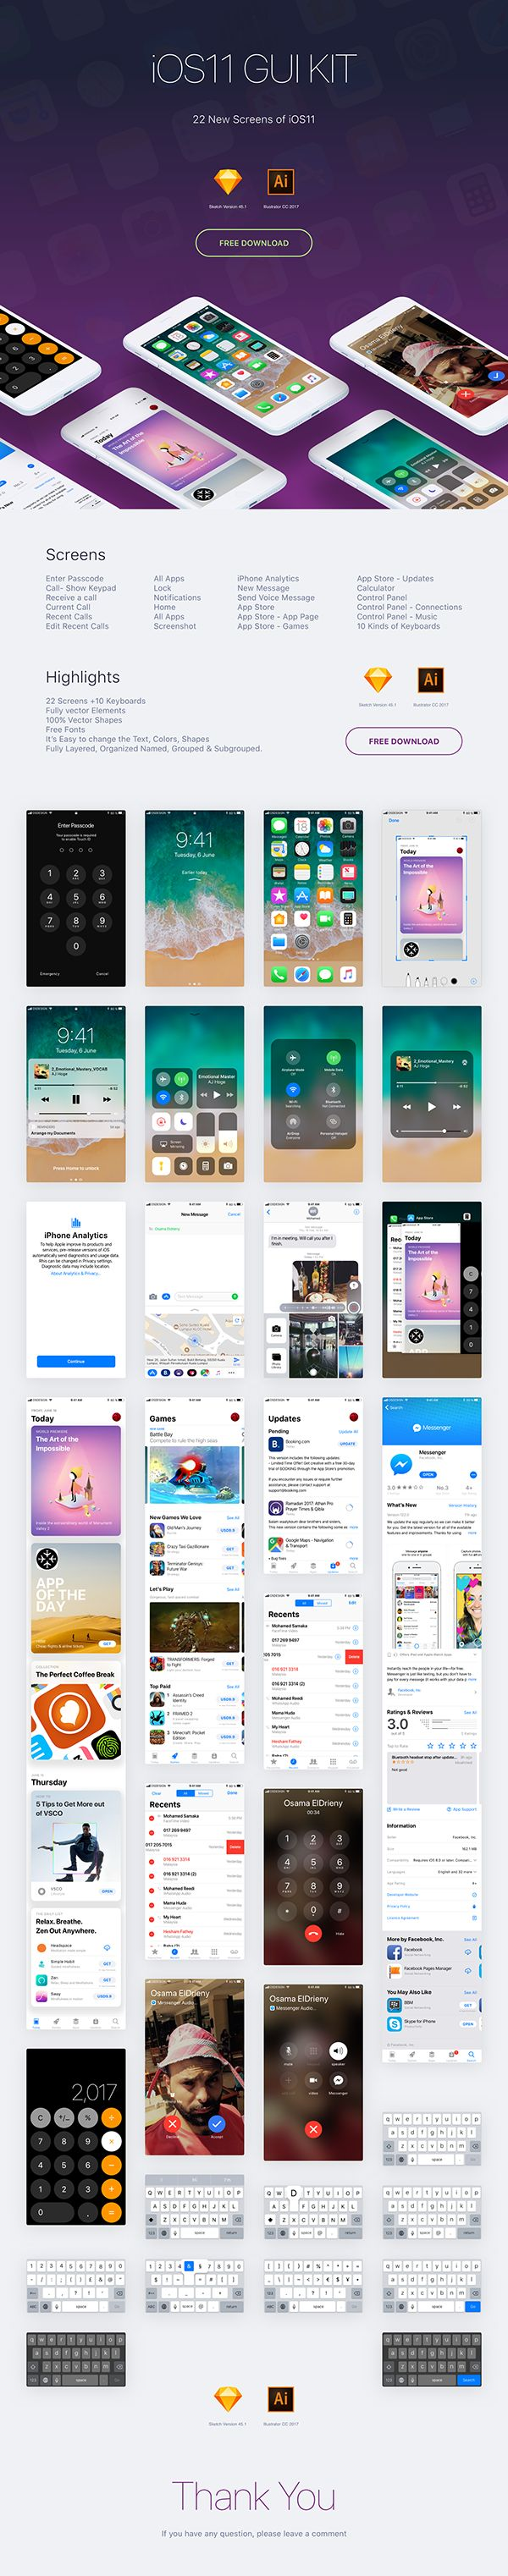 iOS11 UI KIT  22 New Screens of iOS11, for Sketch and Illustrator FREE DOWNLOAD  Highlights: 22 Screens +10 Keyboards Fully vector Elements 100% Vector Shapes Free Fonts It's Easy to change the Text, Colors, Shapes Fully Layered, Organized Named, Grouped & Subgrouped.  Screens: Enter Passcode Call- Show Keypad Receive a call Current Call Recent Calls Edit Recent Calls All Apps Lock Notifications Home All Apps Screenshot iPhone Analytics New Message Send Voice Message App Store App Store…